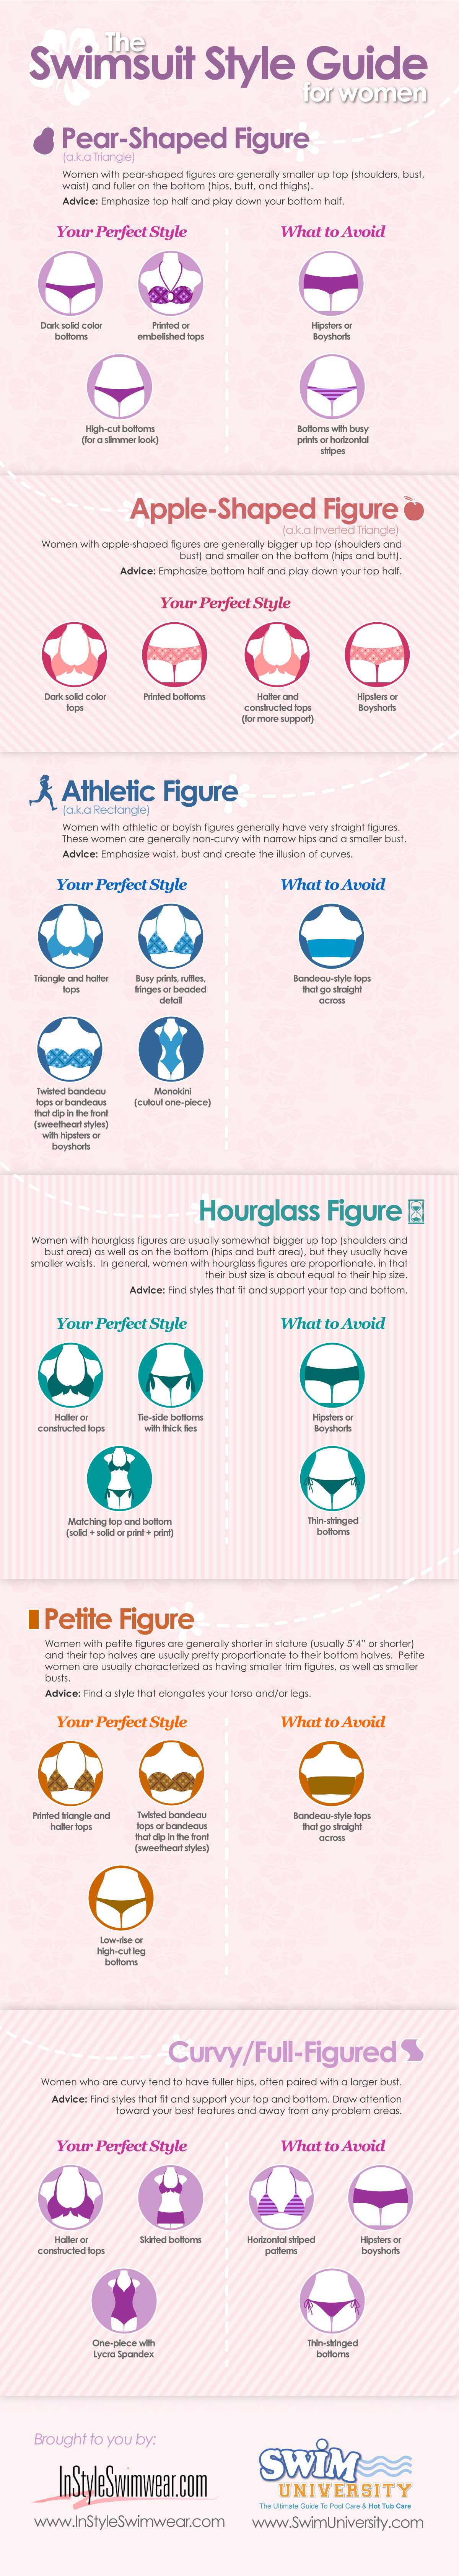 The Swimsuit Style Guide For Woman Infographic